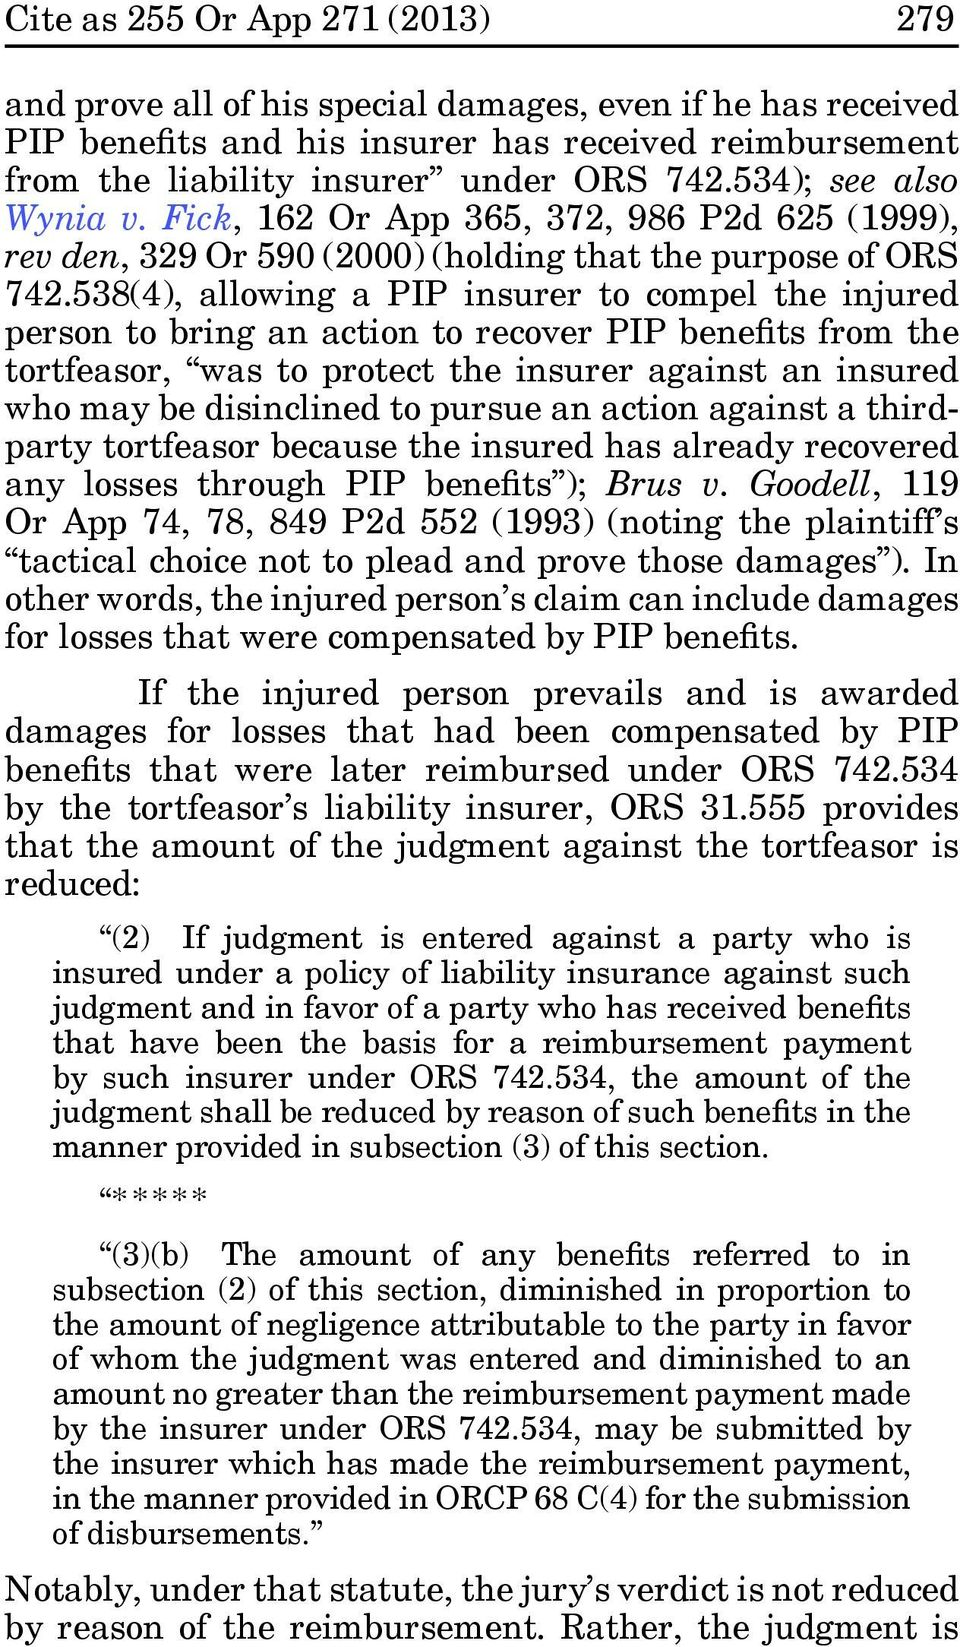 538(4), allowing a PIP insurer to compel the injured person to bring an action to recover PIP benefits from the tortfeasor, was to protect the insurer against an insured who may be disinclined to